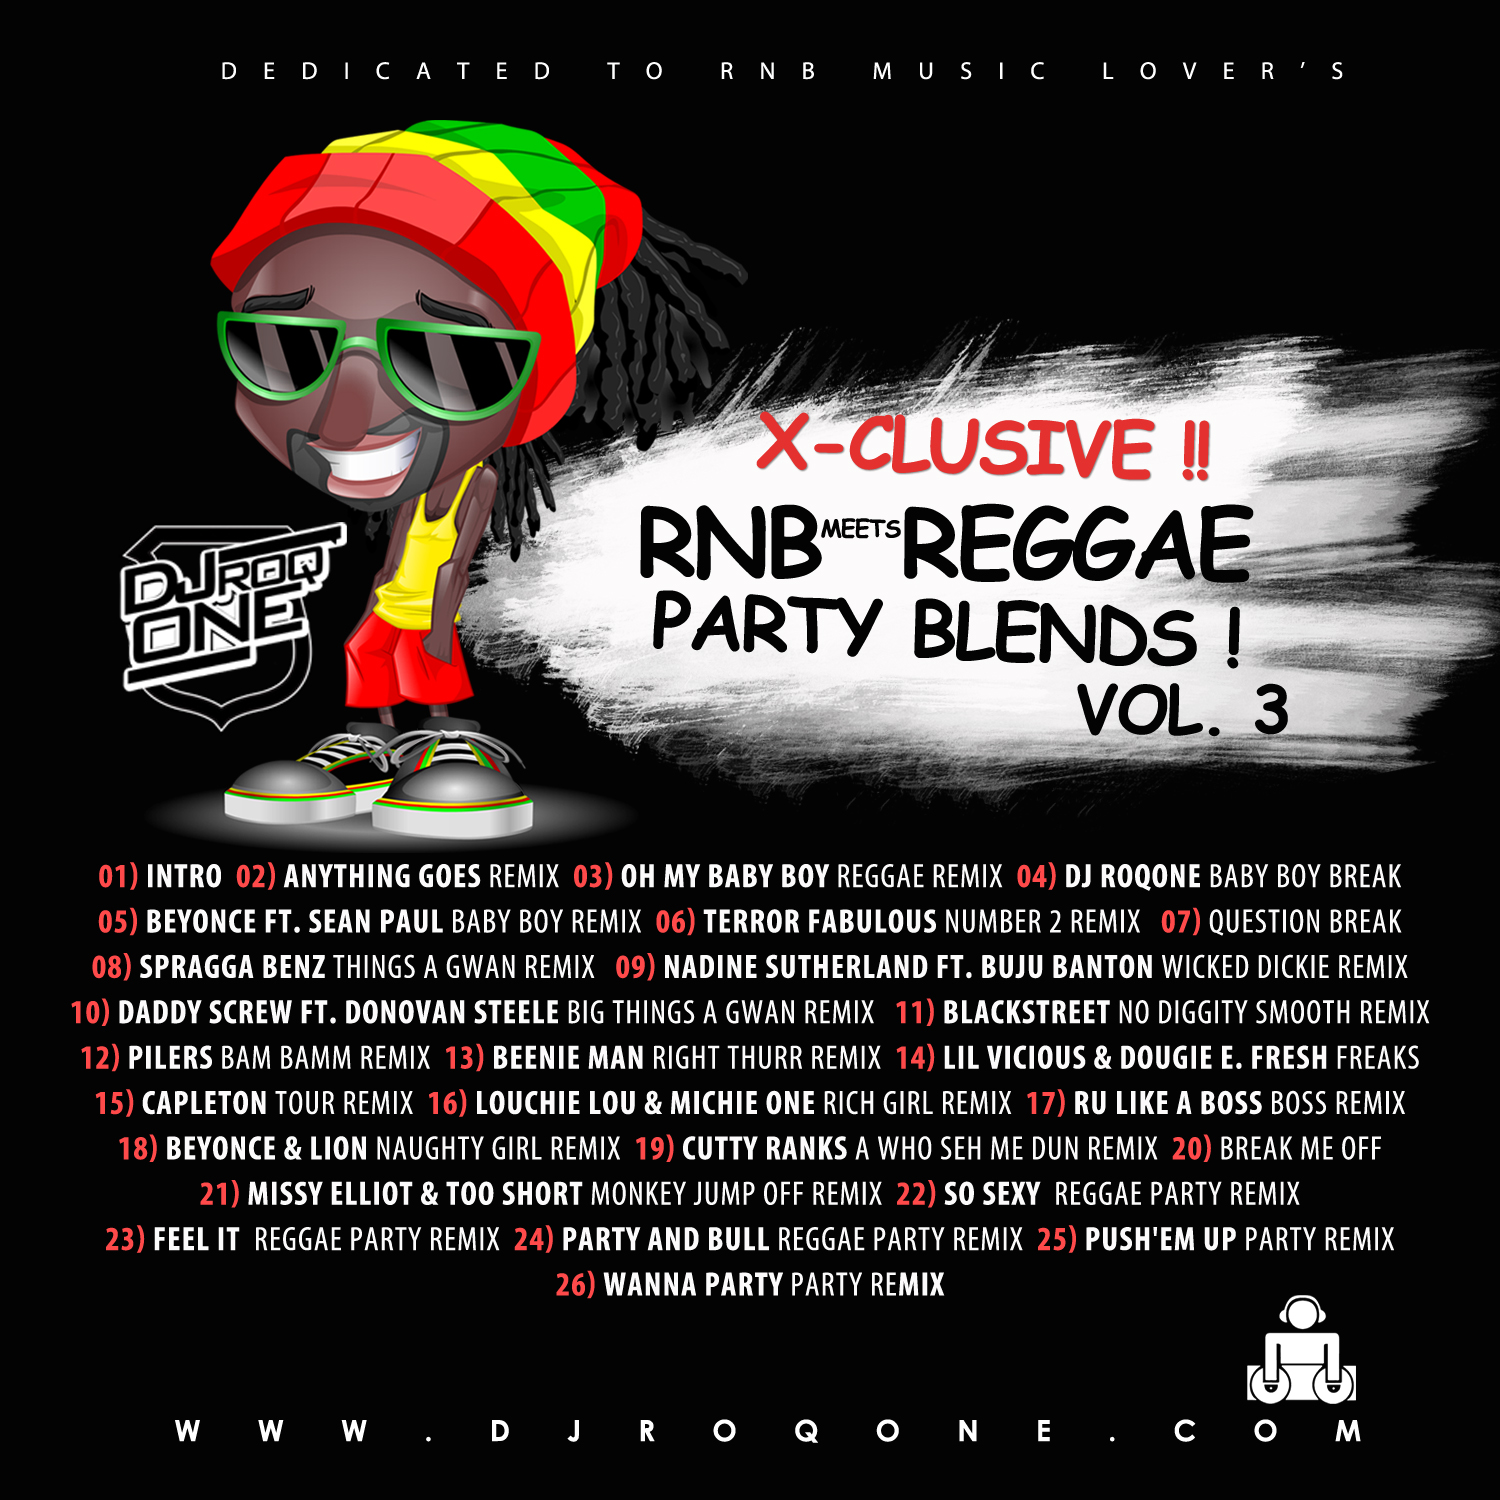 Rnb meets Reggae vol.3